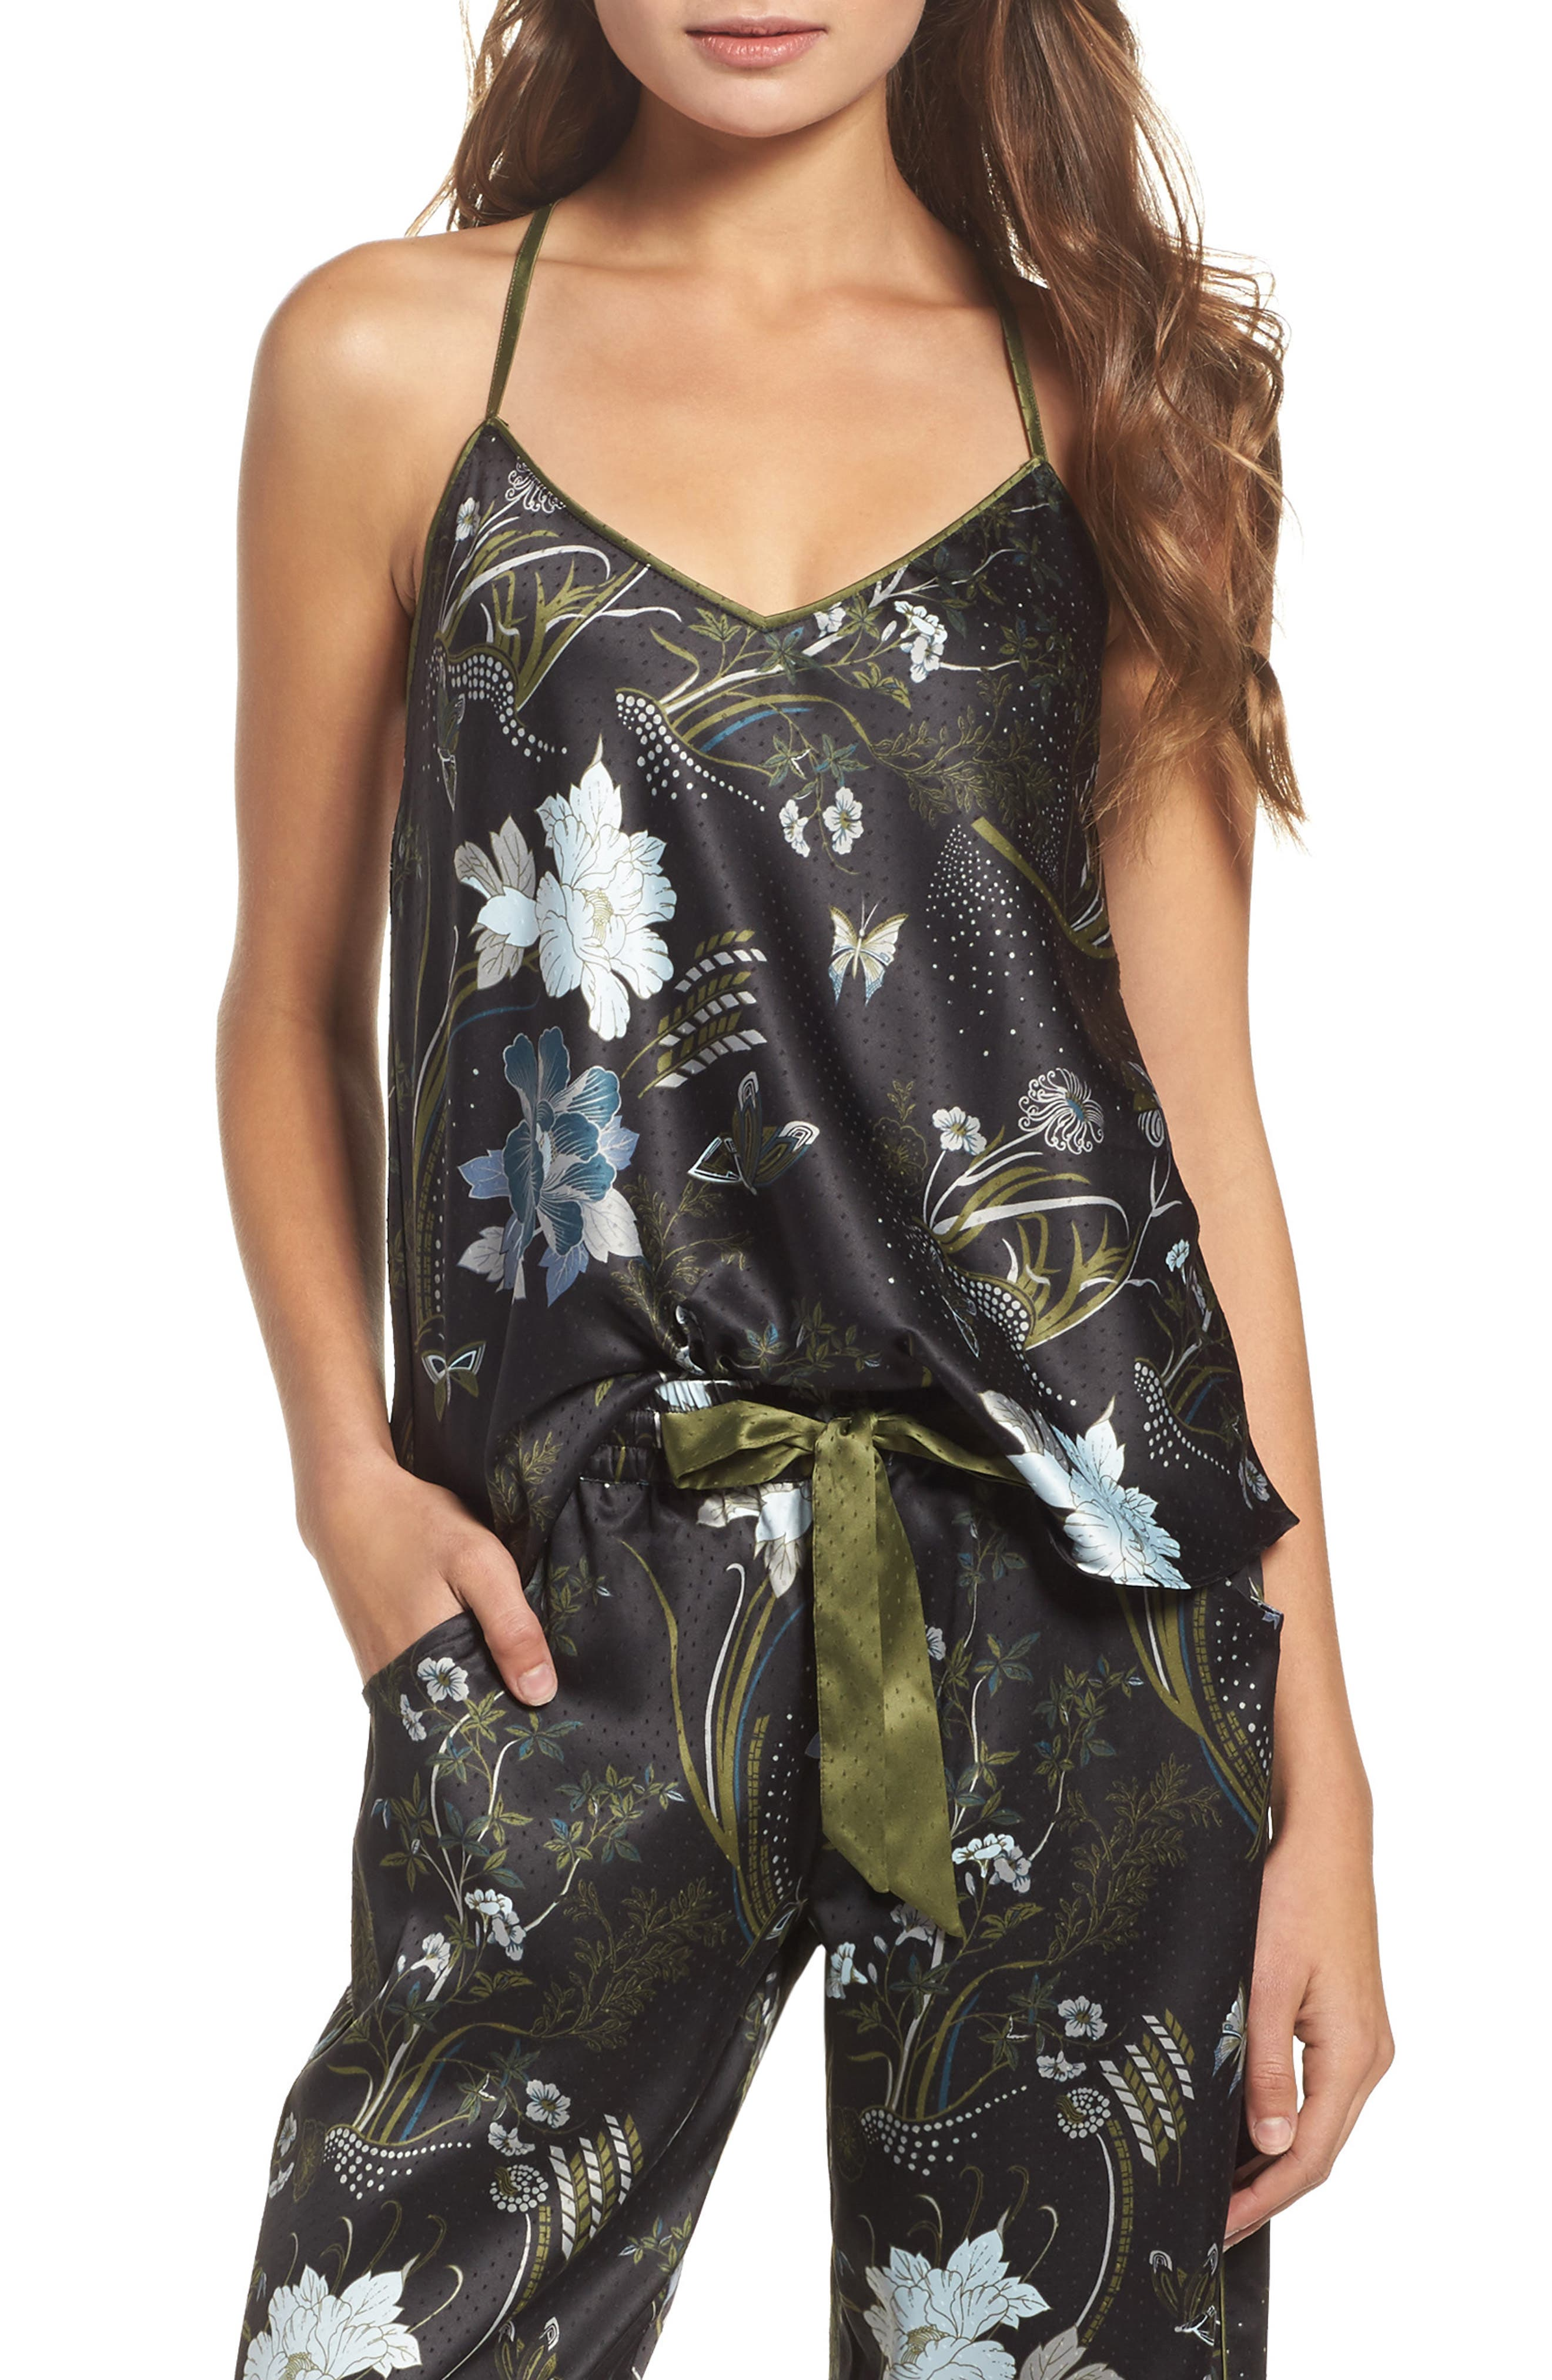 Chelsea28 Late Nights Satin Camisole